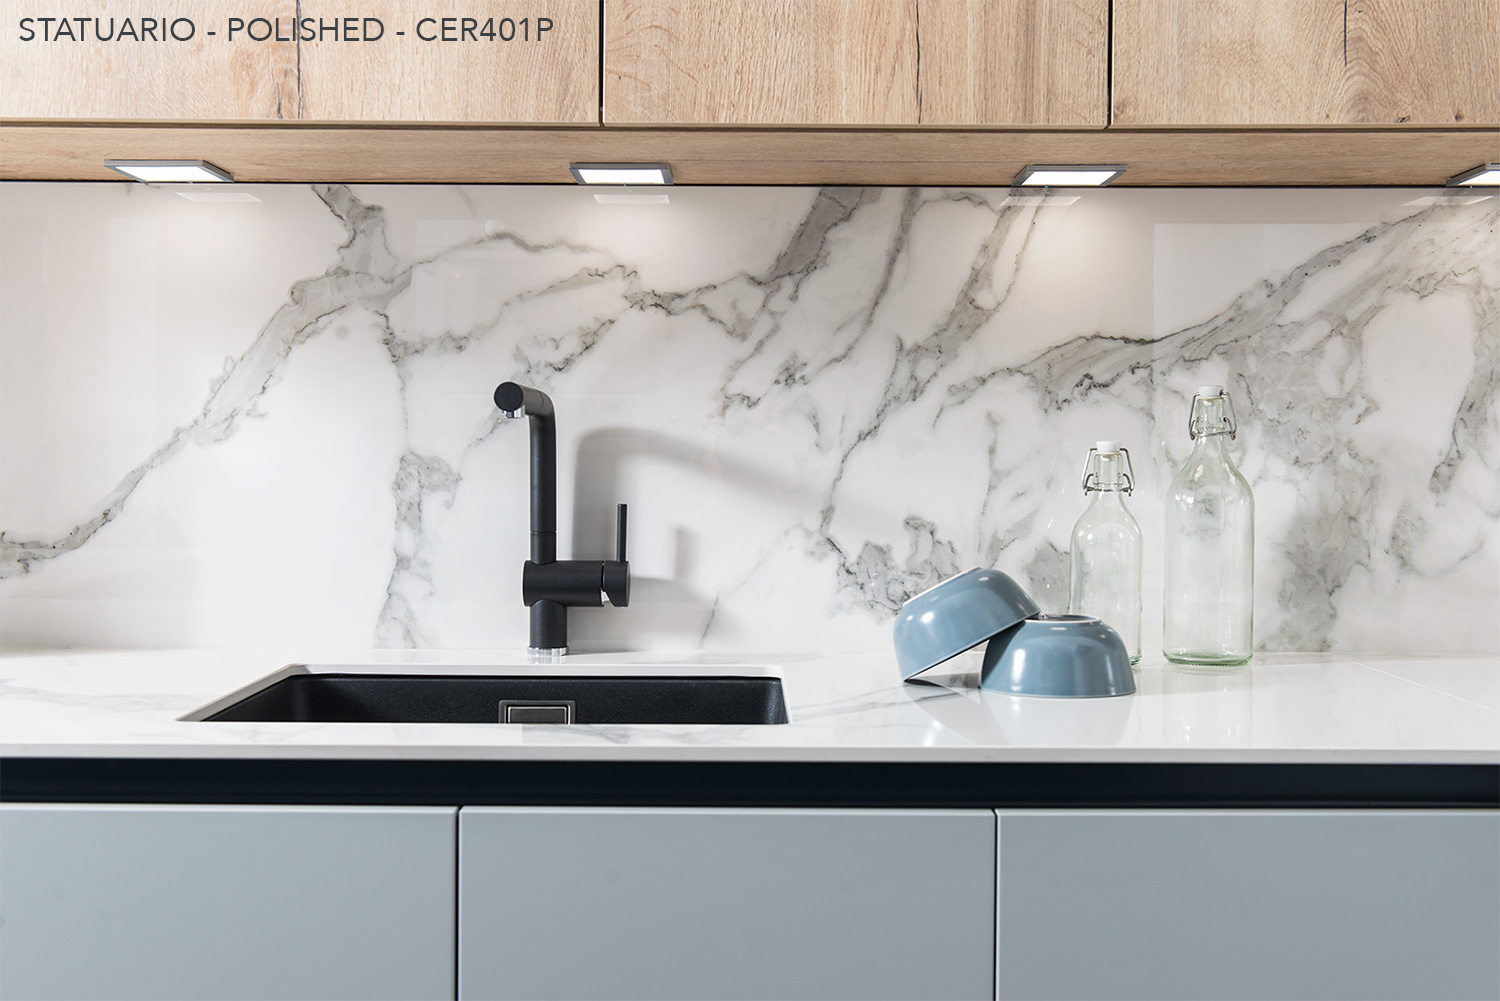 Ceralsio marble inspires Statuario kitchen worktop